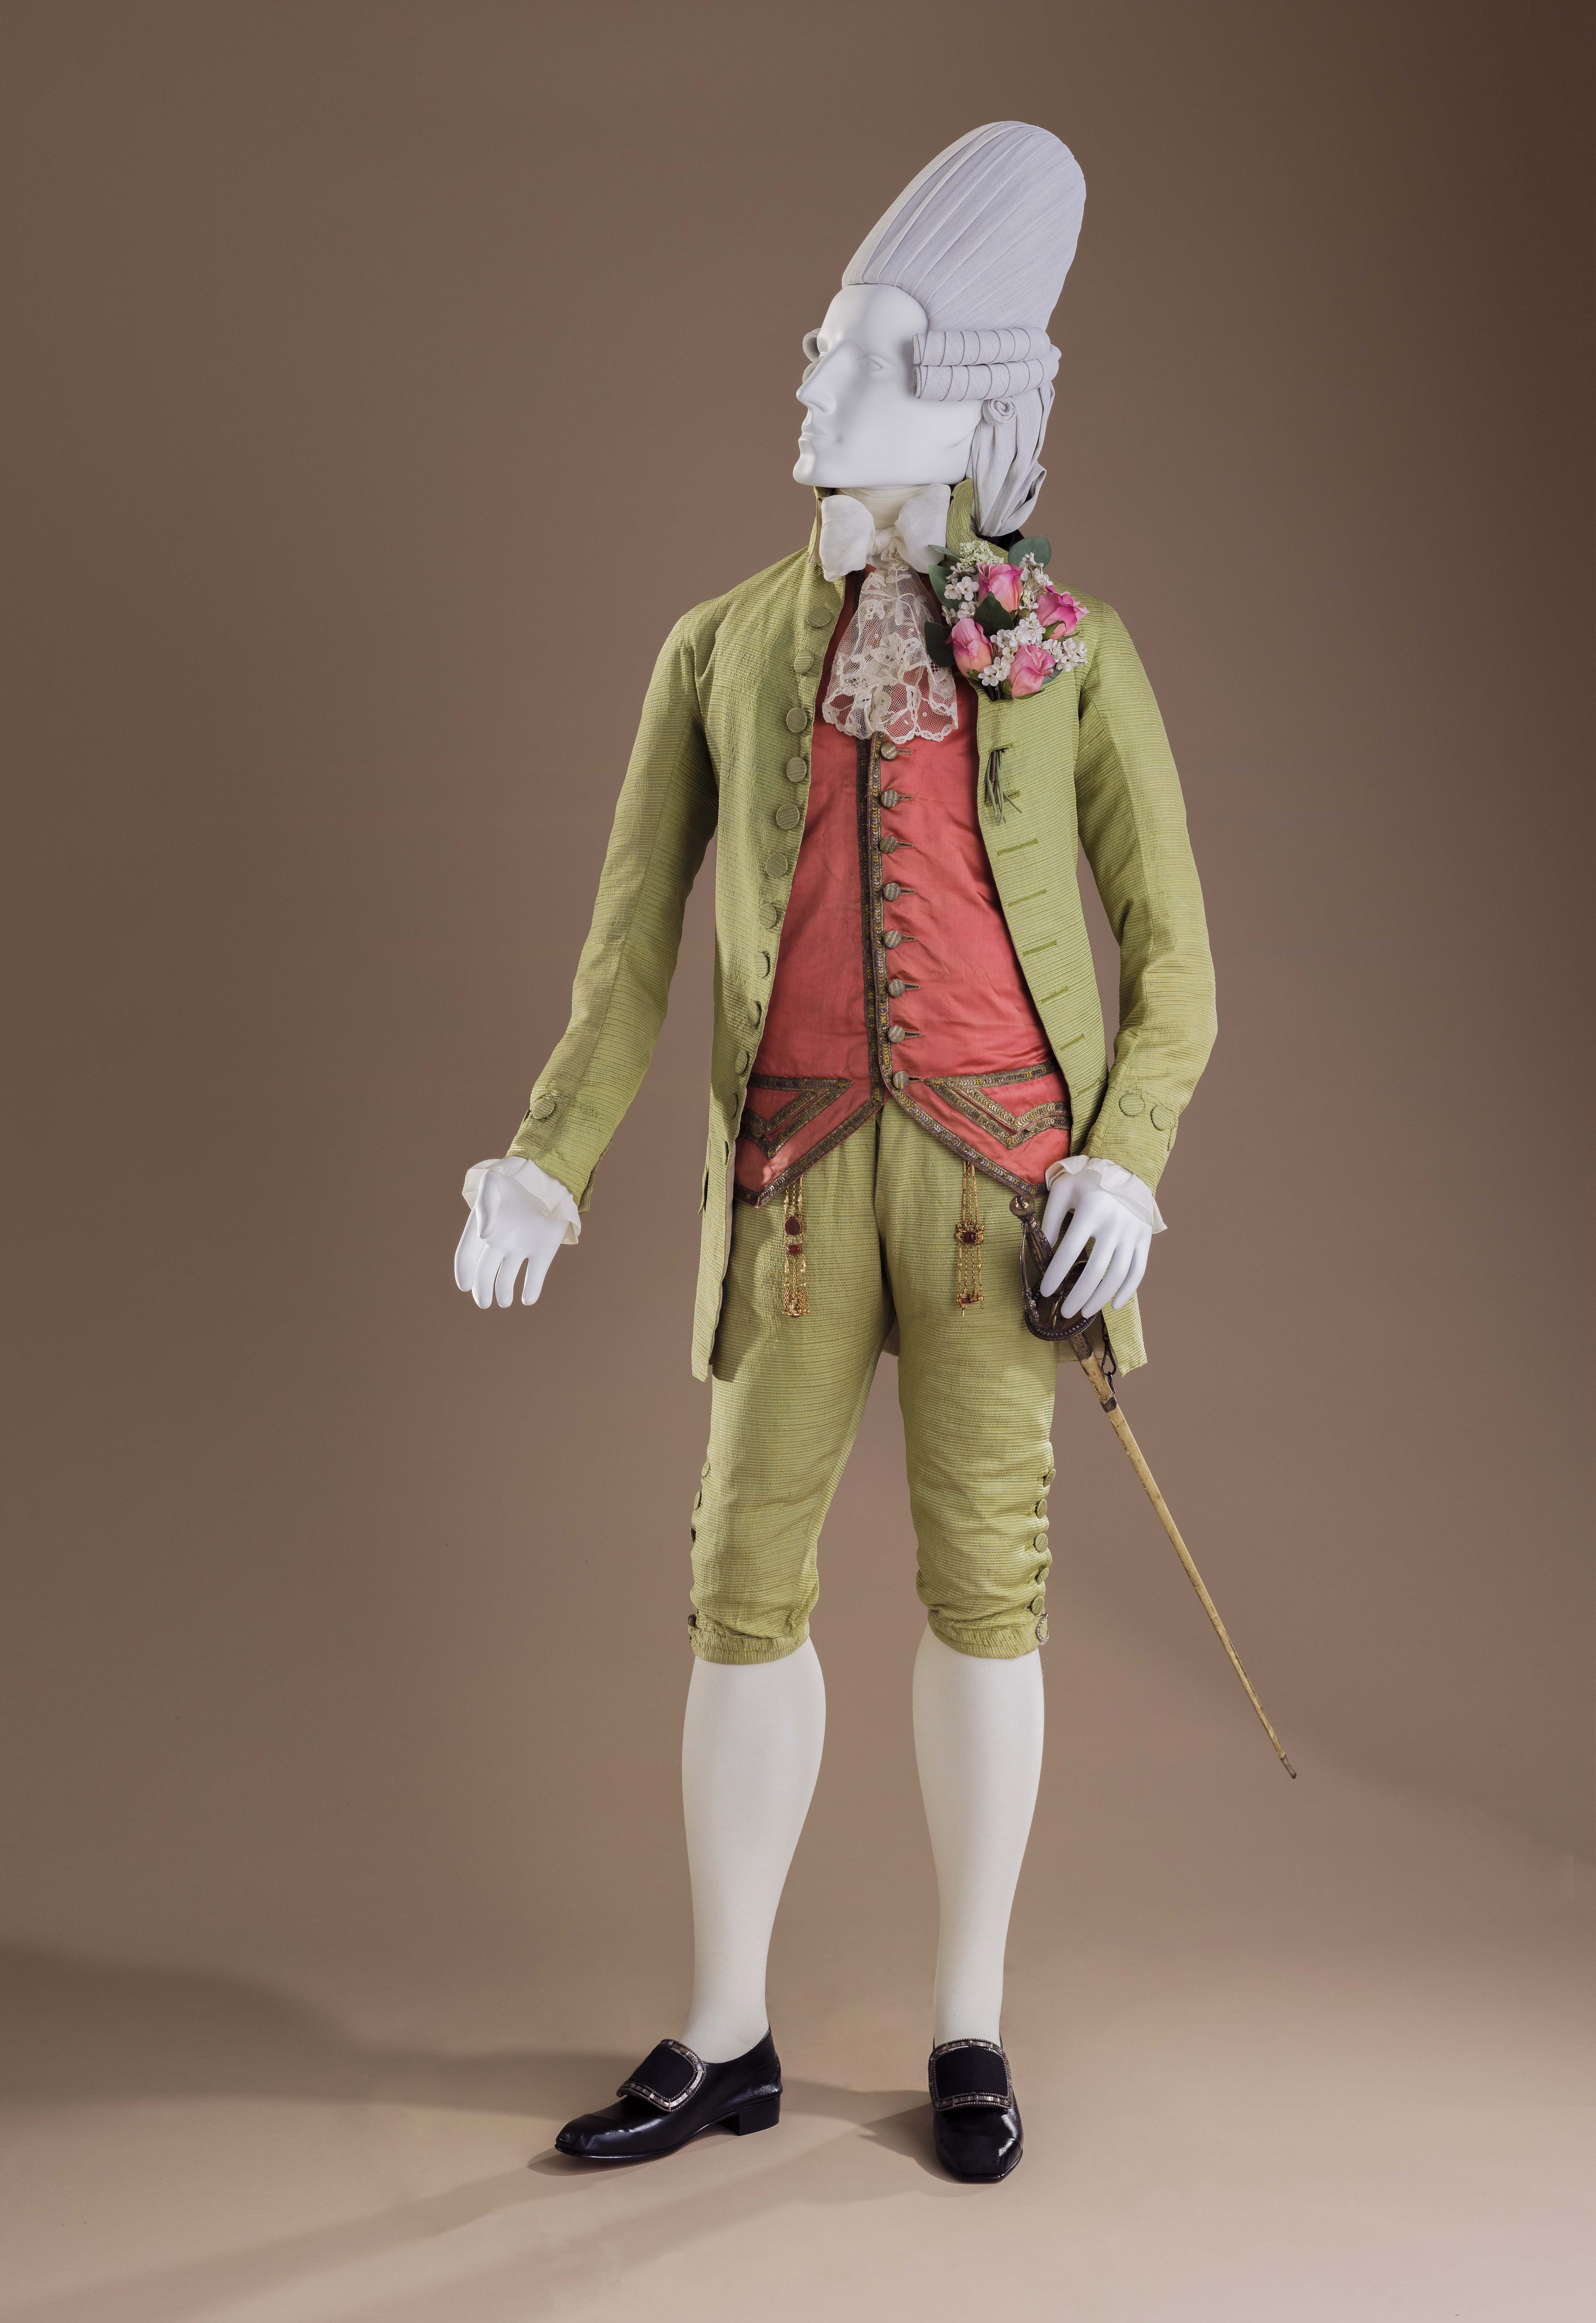 An ensemble typical of a 'macaroni', including suit (Venice, circa 1770), waistcoat (Venice, circa 1770), and sword (France, late-18th century). Photo credit: © Museum associates/LACMA